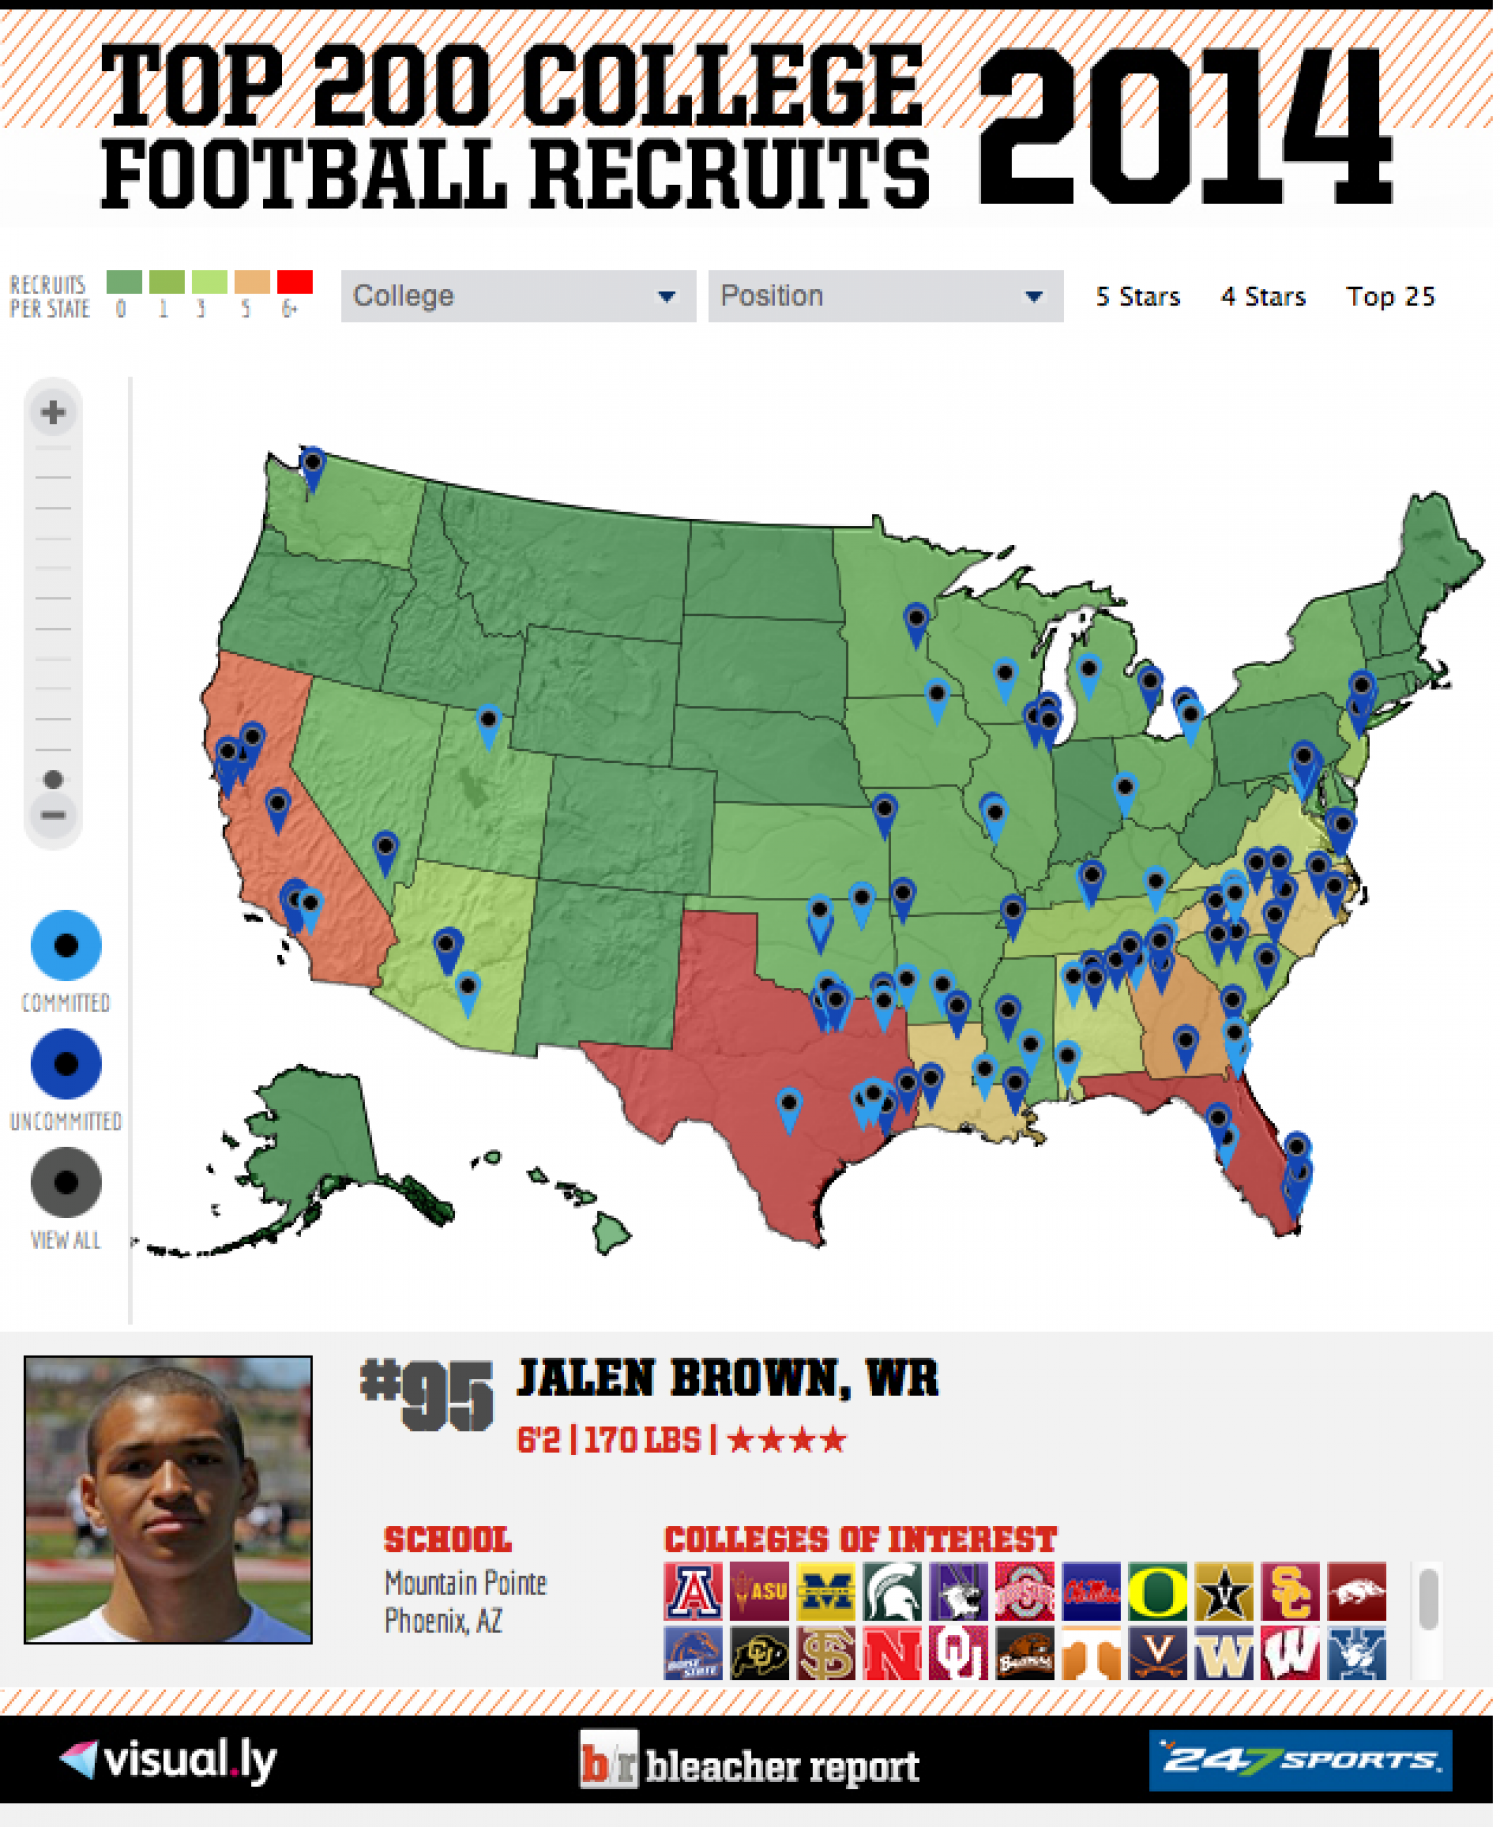 Top 200 College Football Recruits for 2014 Infographic